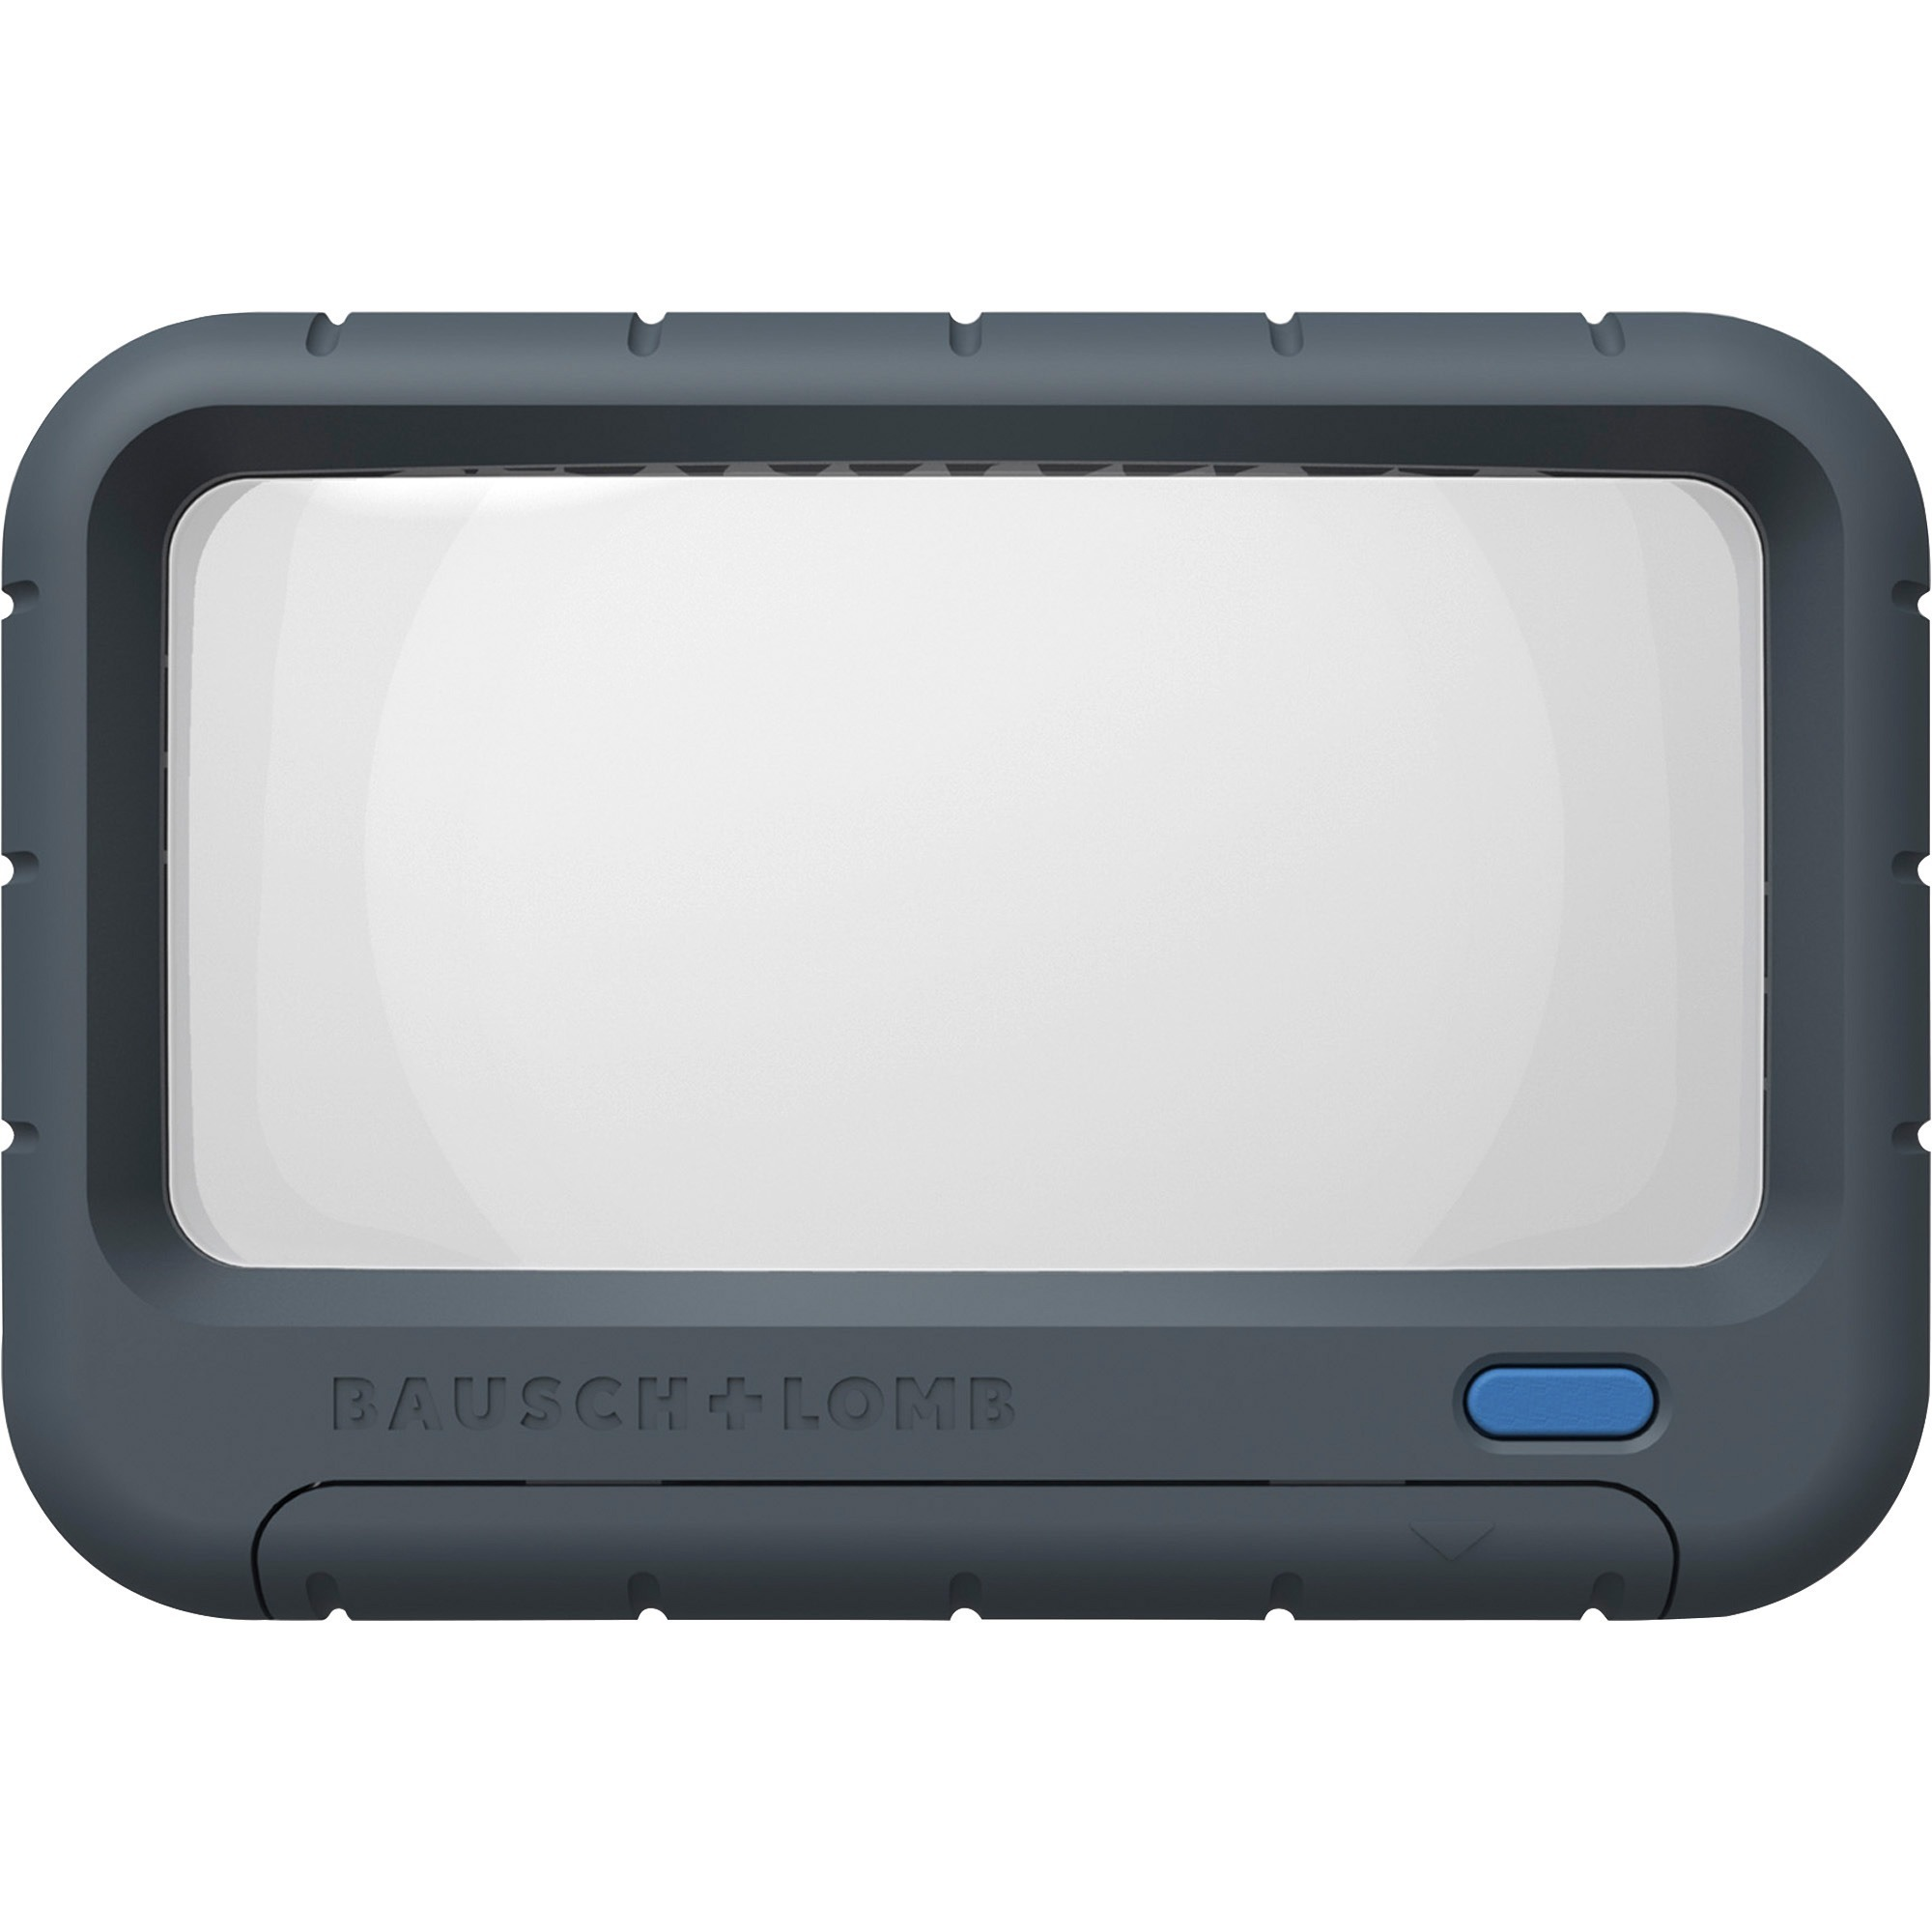 Bausch & Lomb, BAL628006, Rectangular Handheld LED Magnifier, 1 Each, Gray